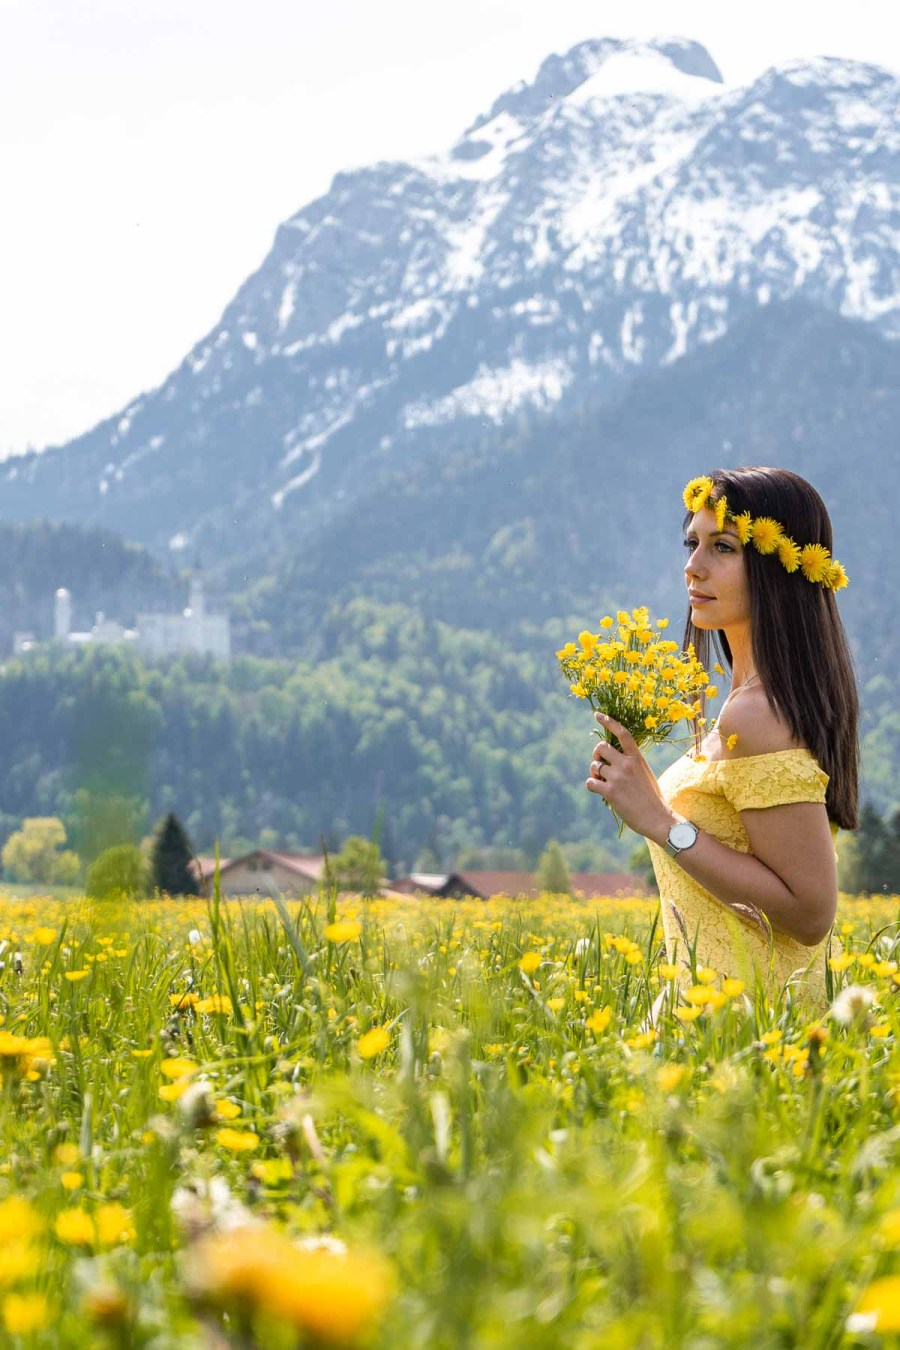 Girl in a flower crown sitting in a daffodil field with the Neuschwanstein Castle in the background